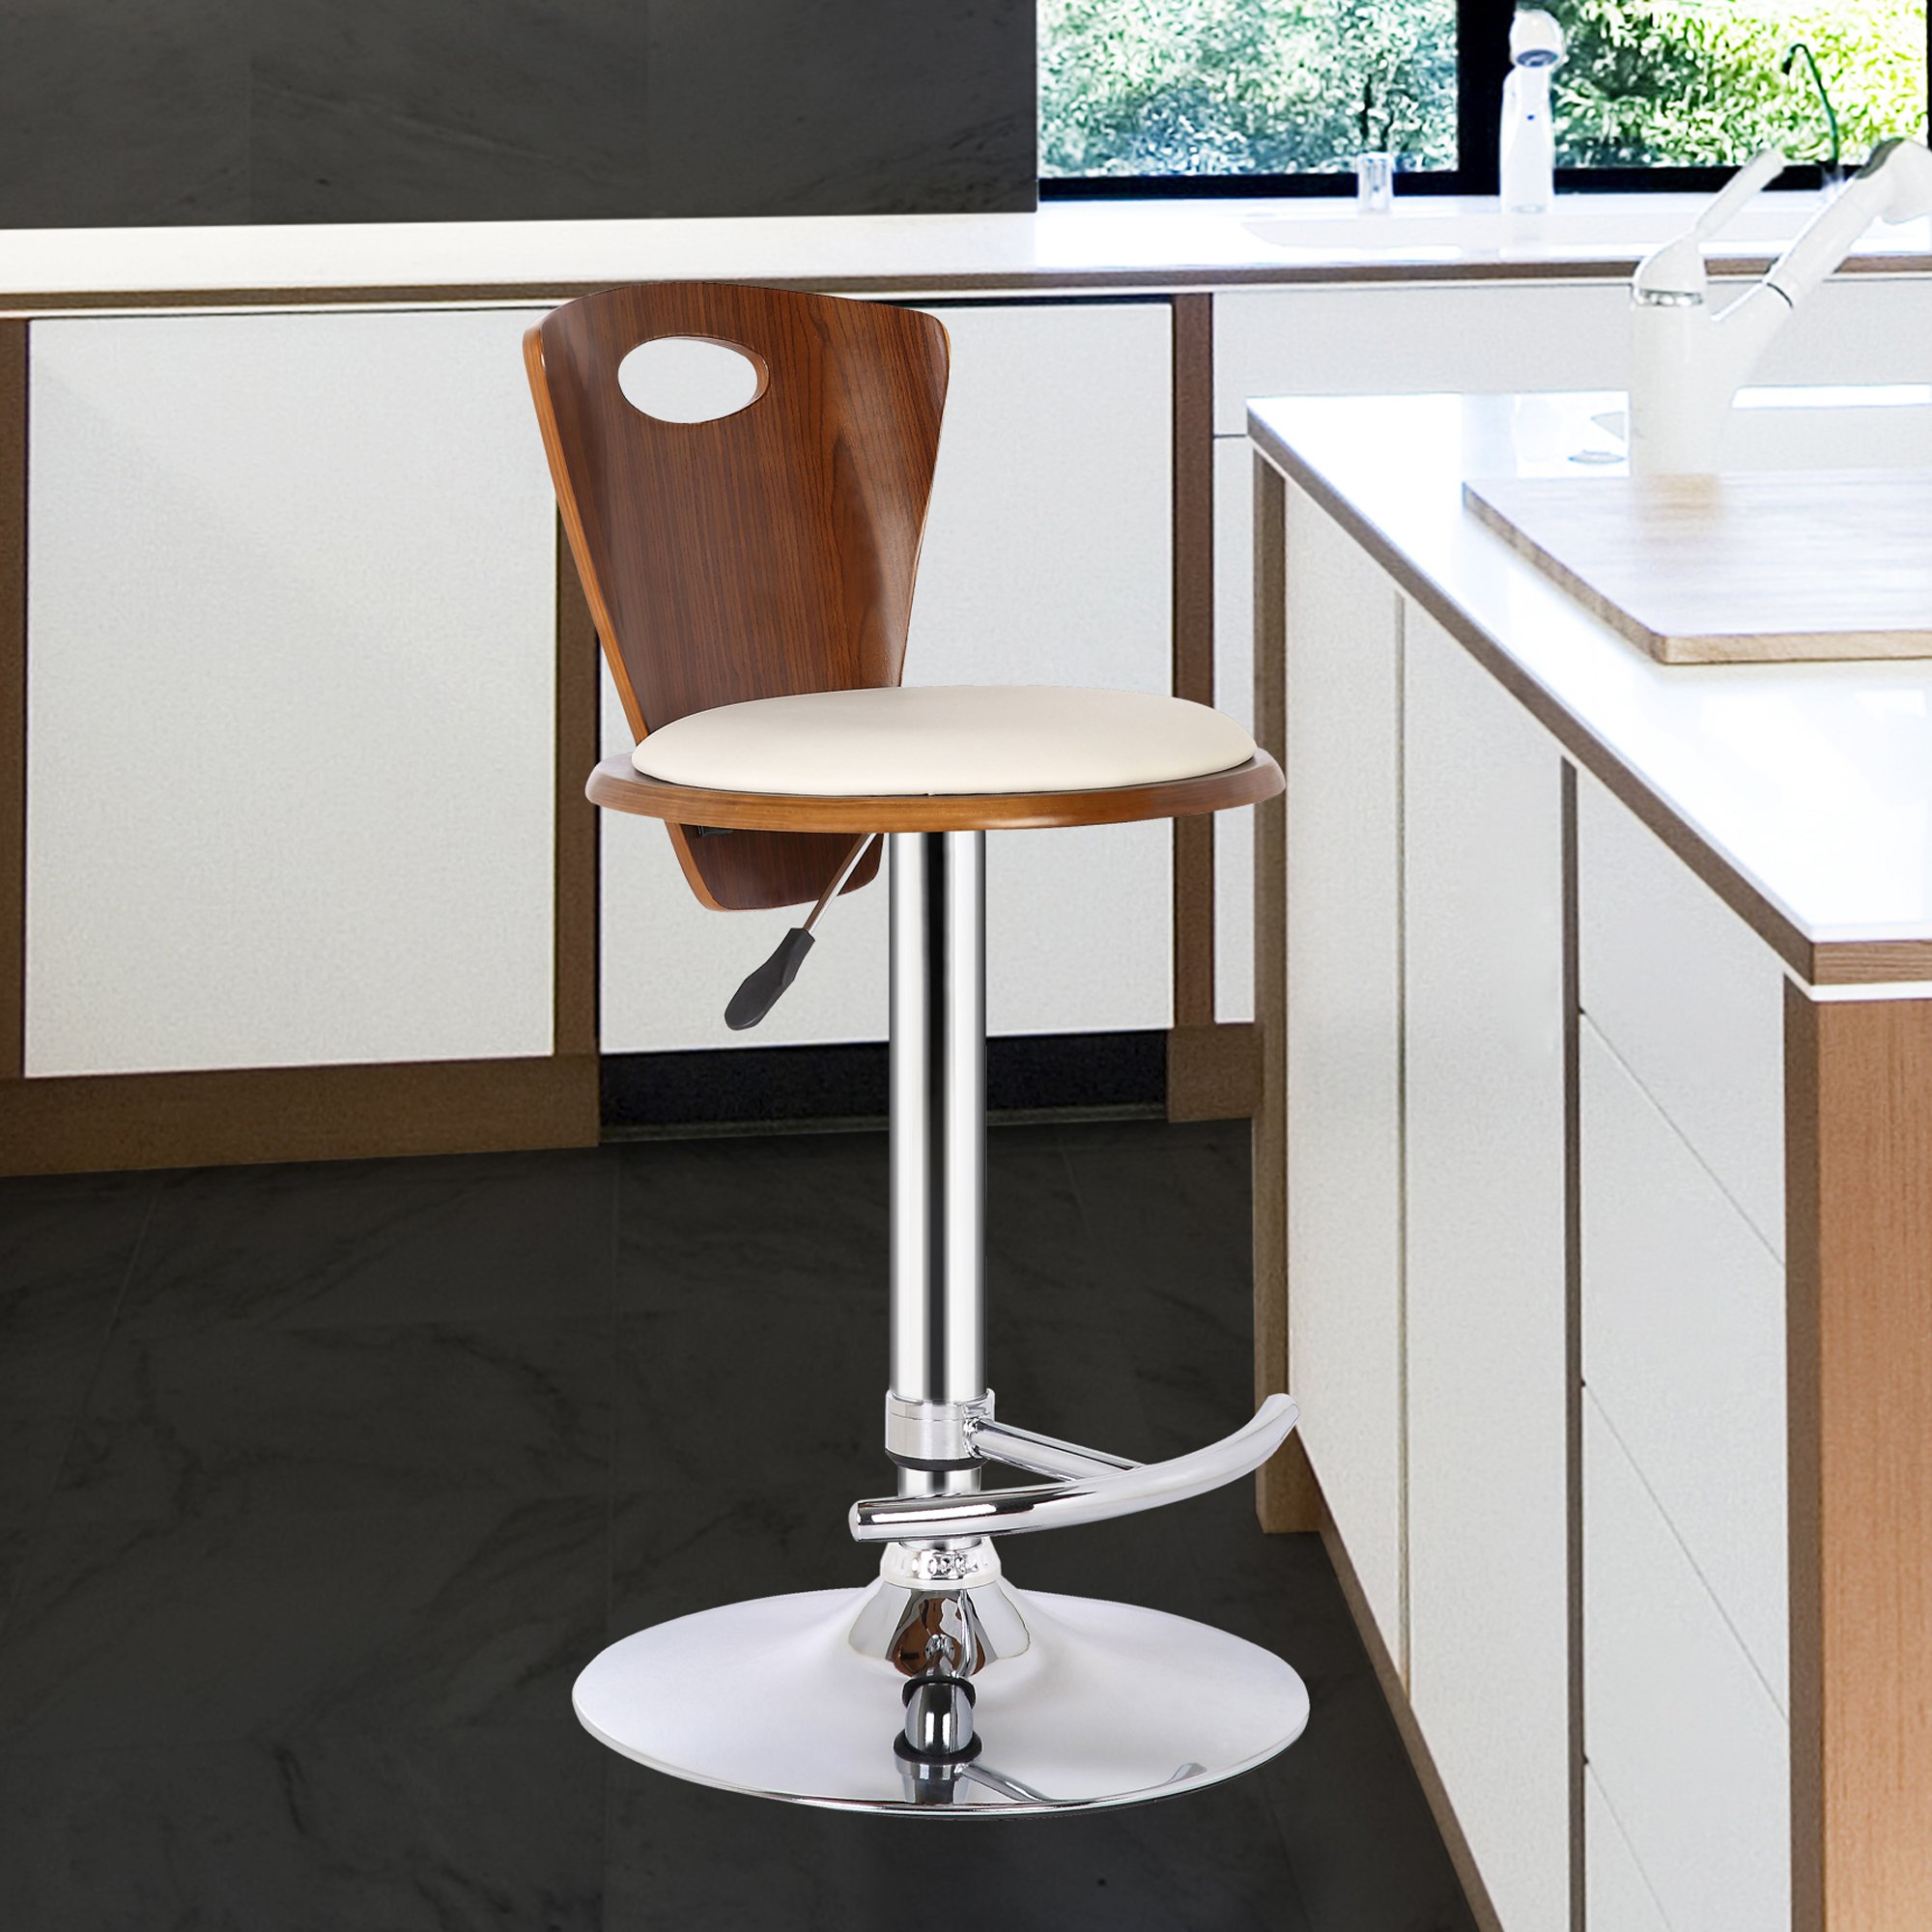 Armen Living LCSEBACRWA Seattle Barstool in Cream Faux Leather, Walnut Wood and Chrome Finish by Armen Living (Image #1)